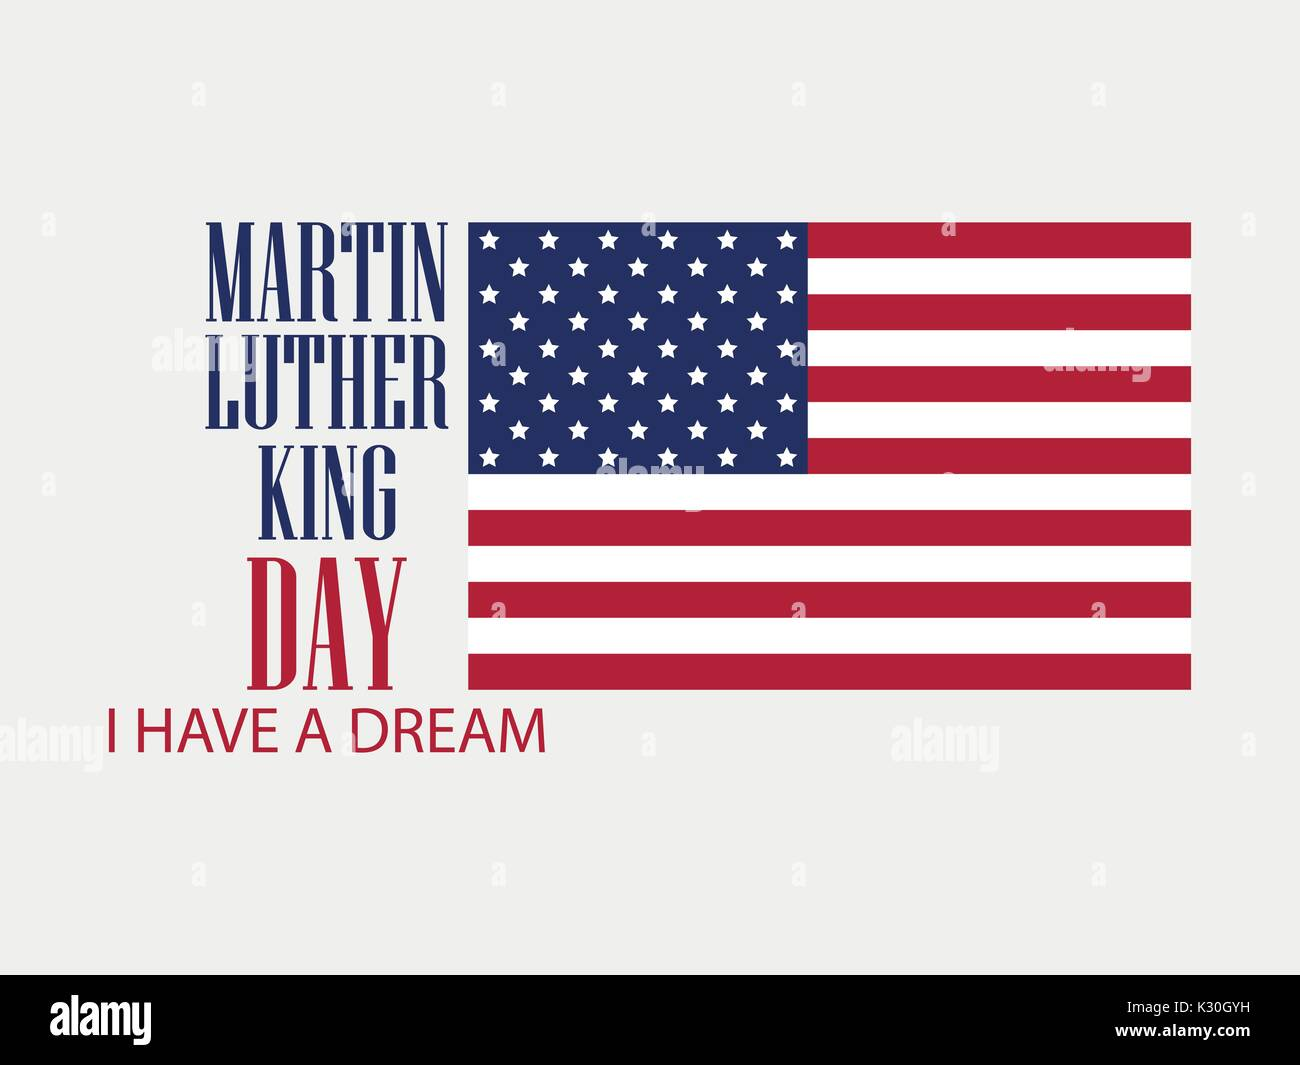 the american dream by martin c jischke What is martin c jischke martin c jischke is a prominent american higher-education administrator and advocate, and was the tenth president of purdue.